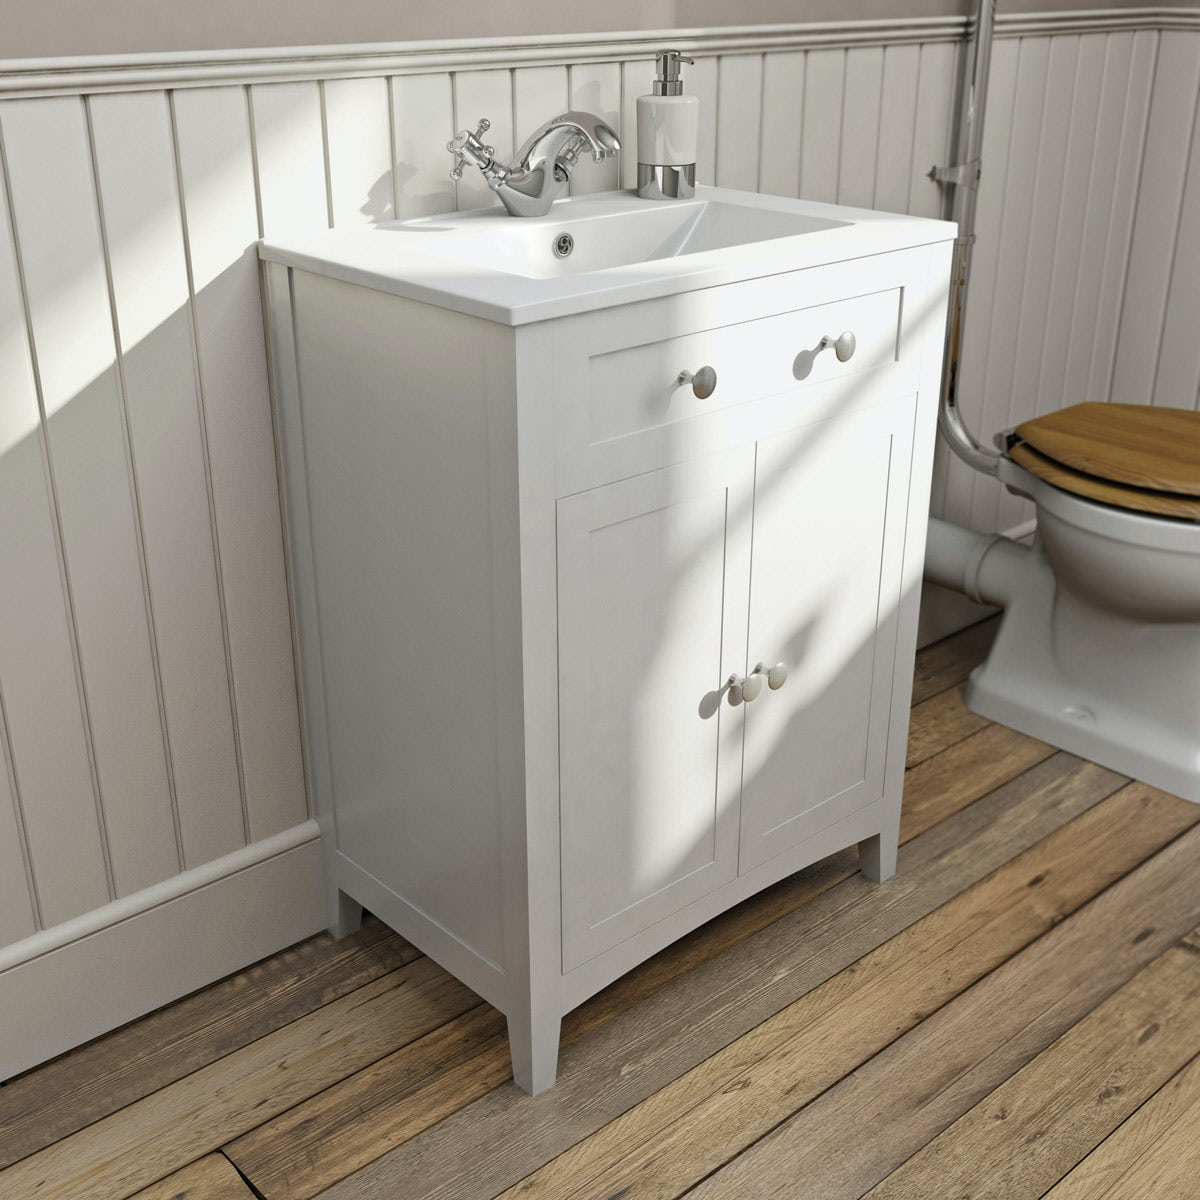 Vanity Units For Bathroom The Bath Cocamberley White Vanity Unit With Basin 600Mm